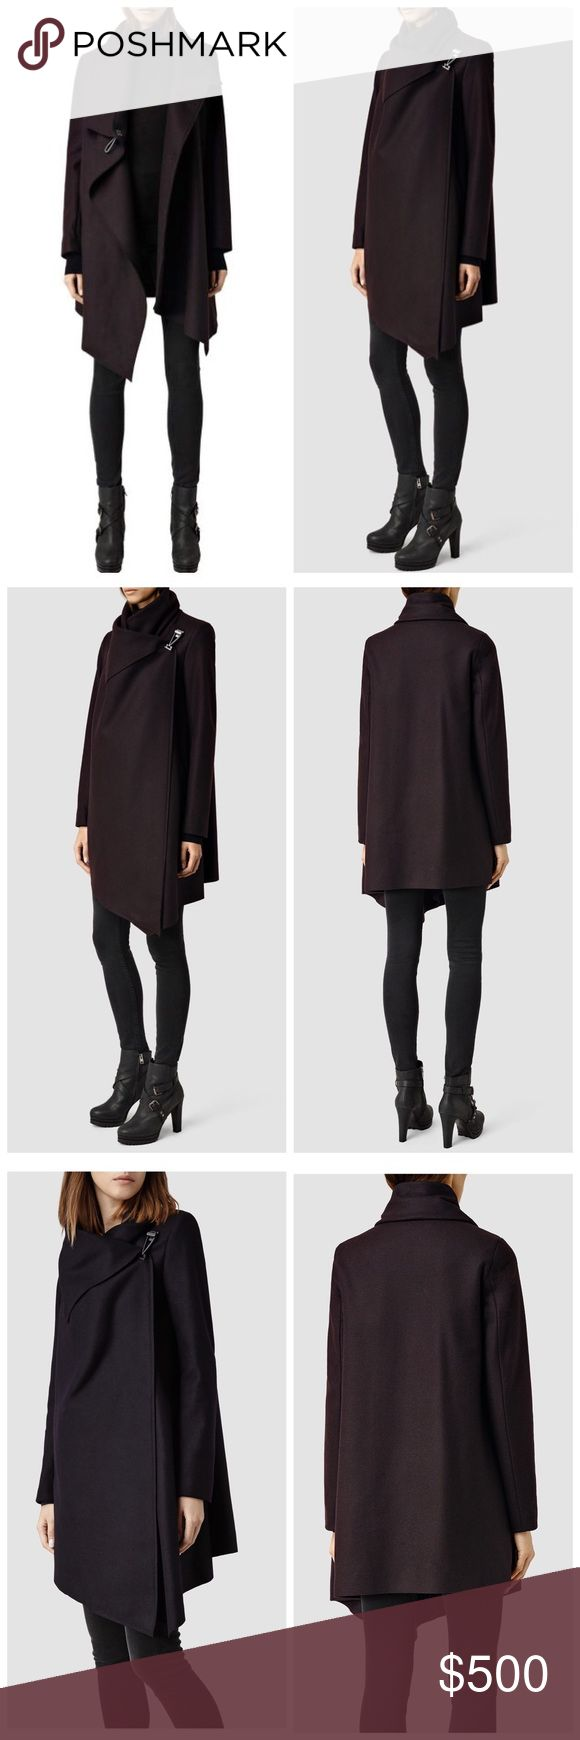 🆕⬇️AllSaints Oxblood City Monument Coat •NWT. Color: Oxblood. Crafted from warm Italian wool blend, the City Monument Coat is one of AS bestsellers, loved for its distinctive asymmetric shape. The metal hook/eye closure at the shoulder creates a warm funnel neck and natural drape across the body •Funnel neck, Raw edge finish, Asymmetric •Metal hook/eye closure w/AS logo engraving  •80% wool, 20% polyamide. Dry Clean Only •Midweight, Fully lined for warmth and comfort •Regular fit, Model is…